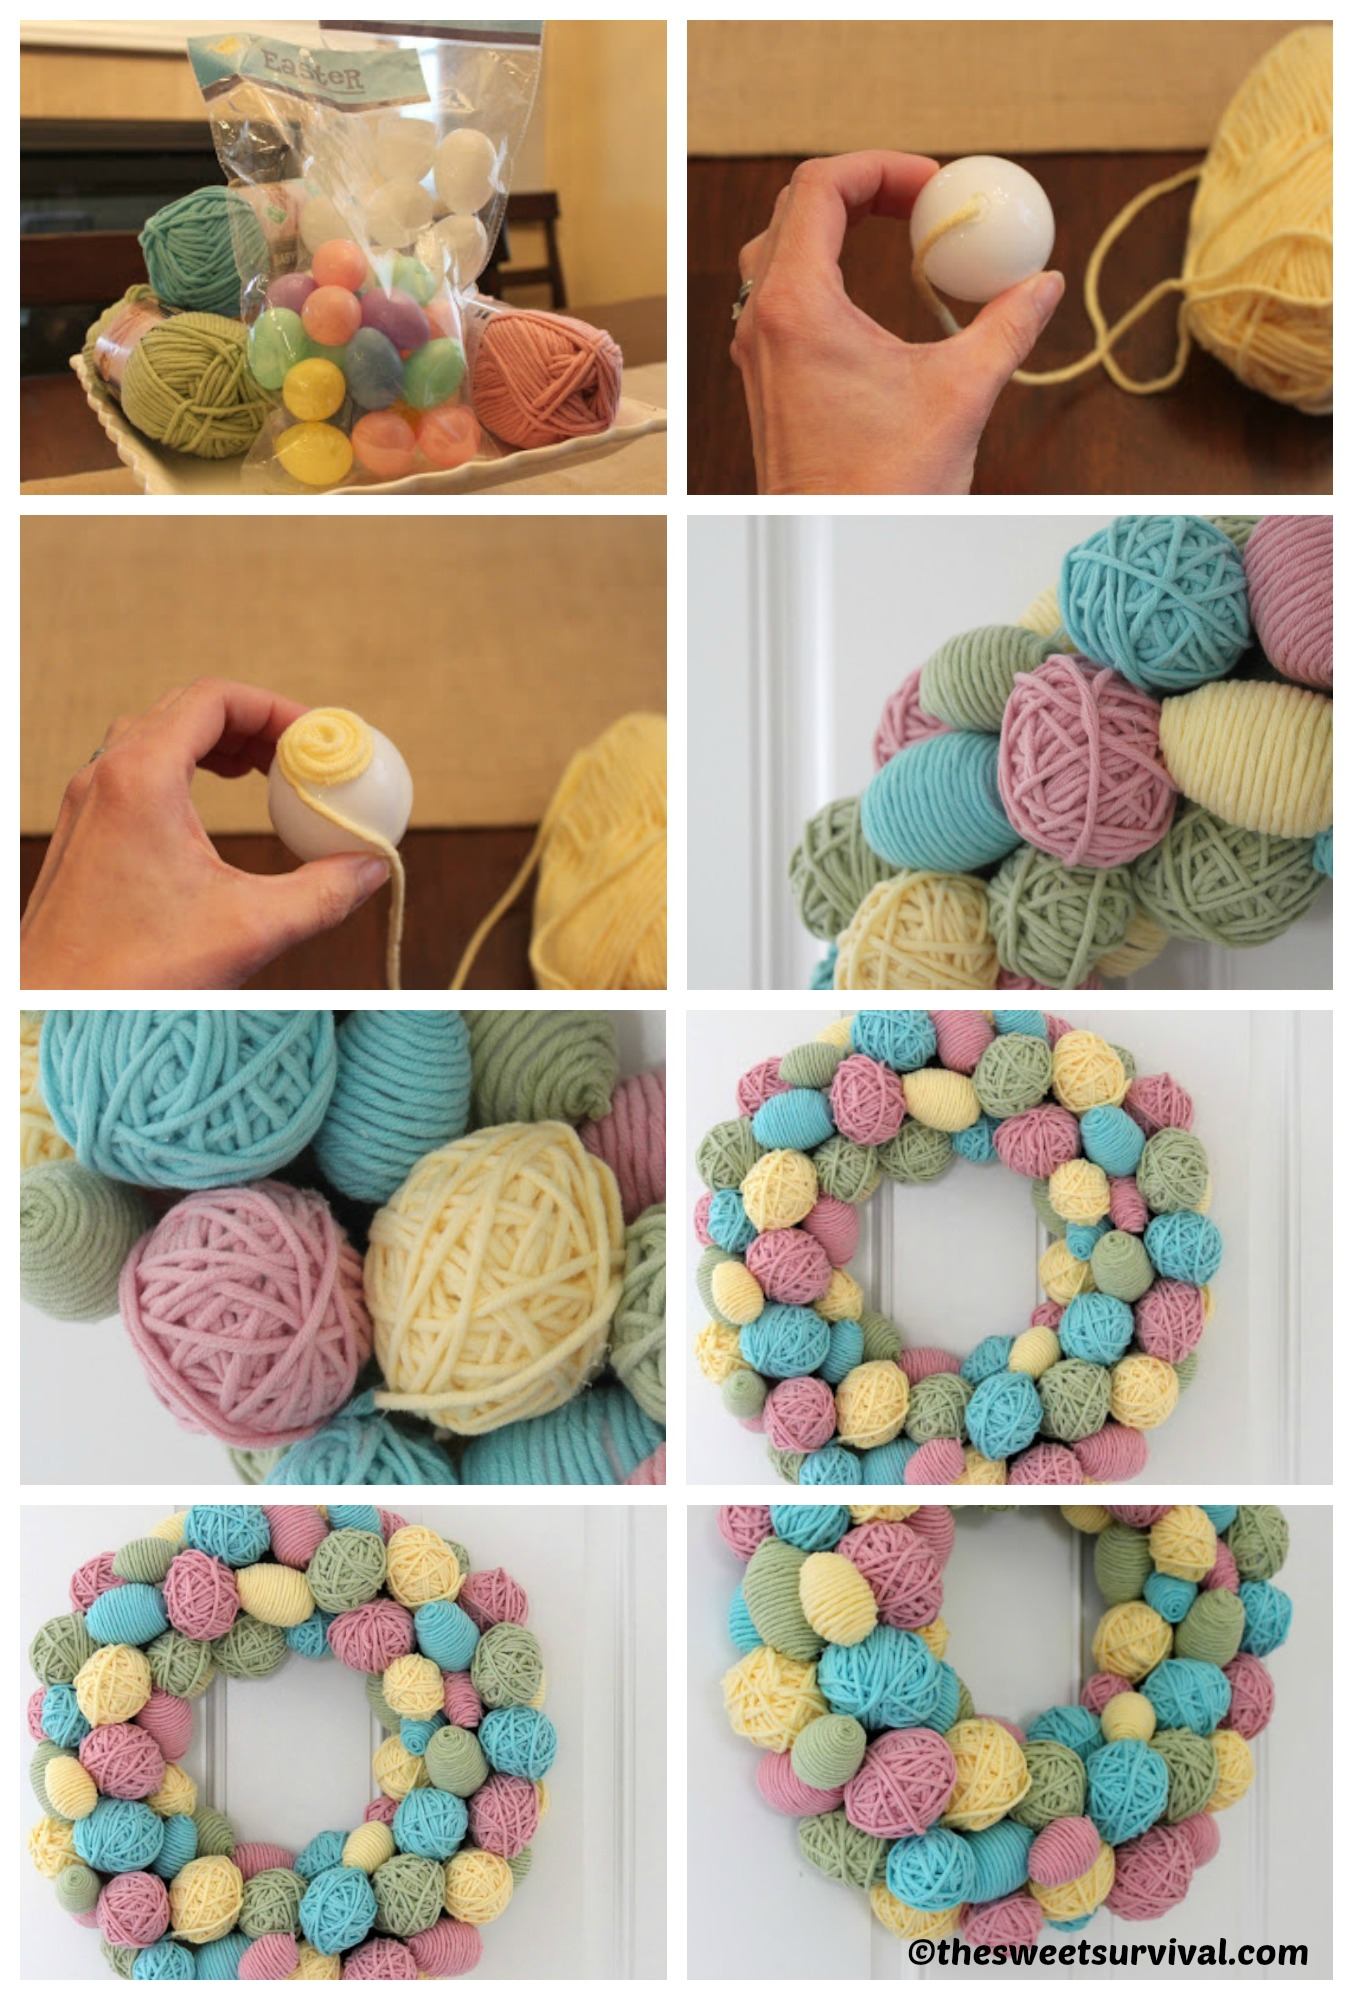 How to make a Yarn Egg Wreath